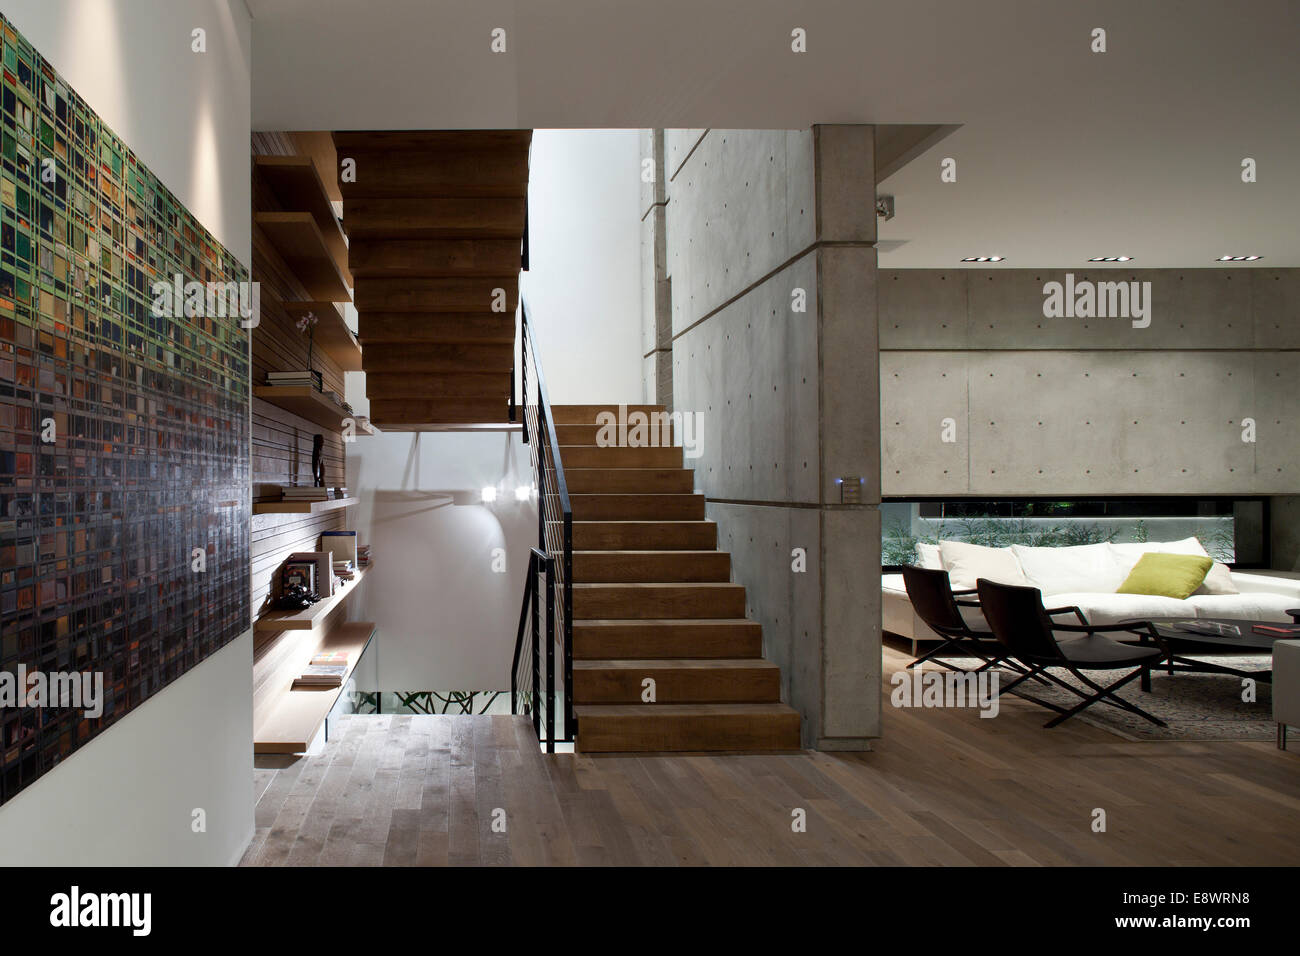 Open Plan Living Room And Staircase In D House Israel Middle East Stock Photo Royalty Free